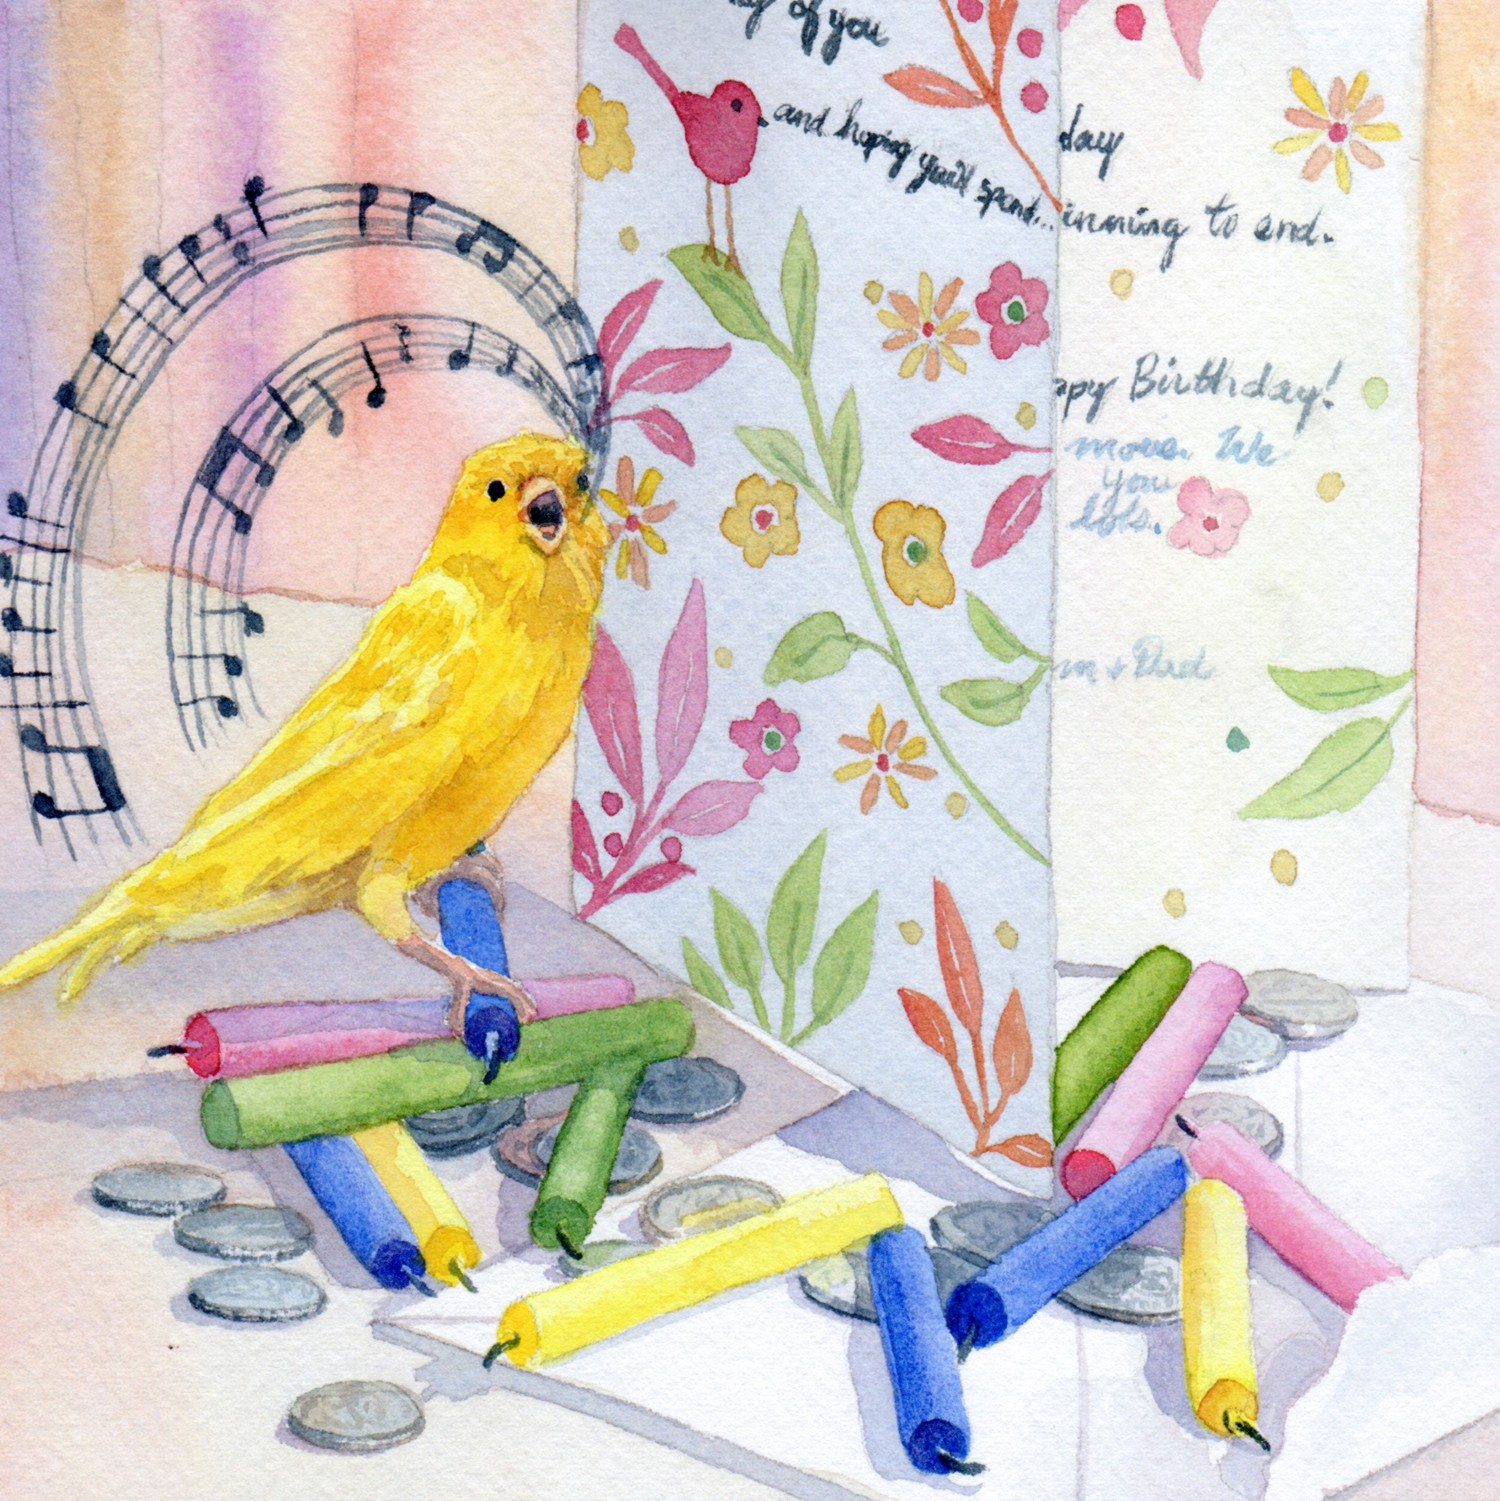 Day 17 - Card, Candles, Coins, and Canary © Lorraine Watry